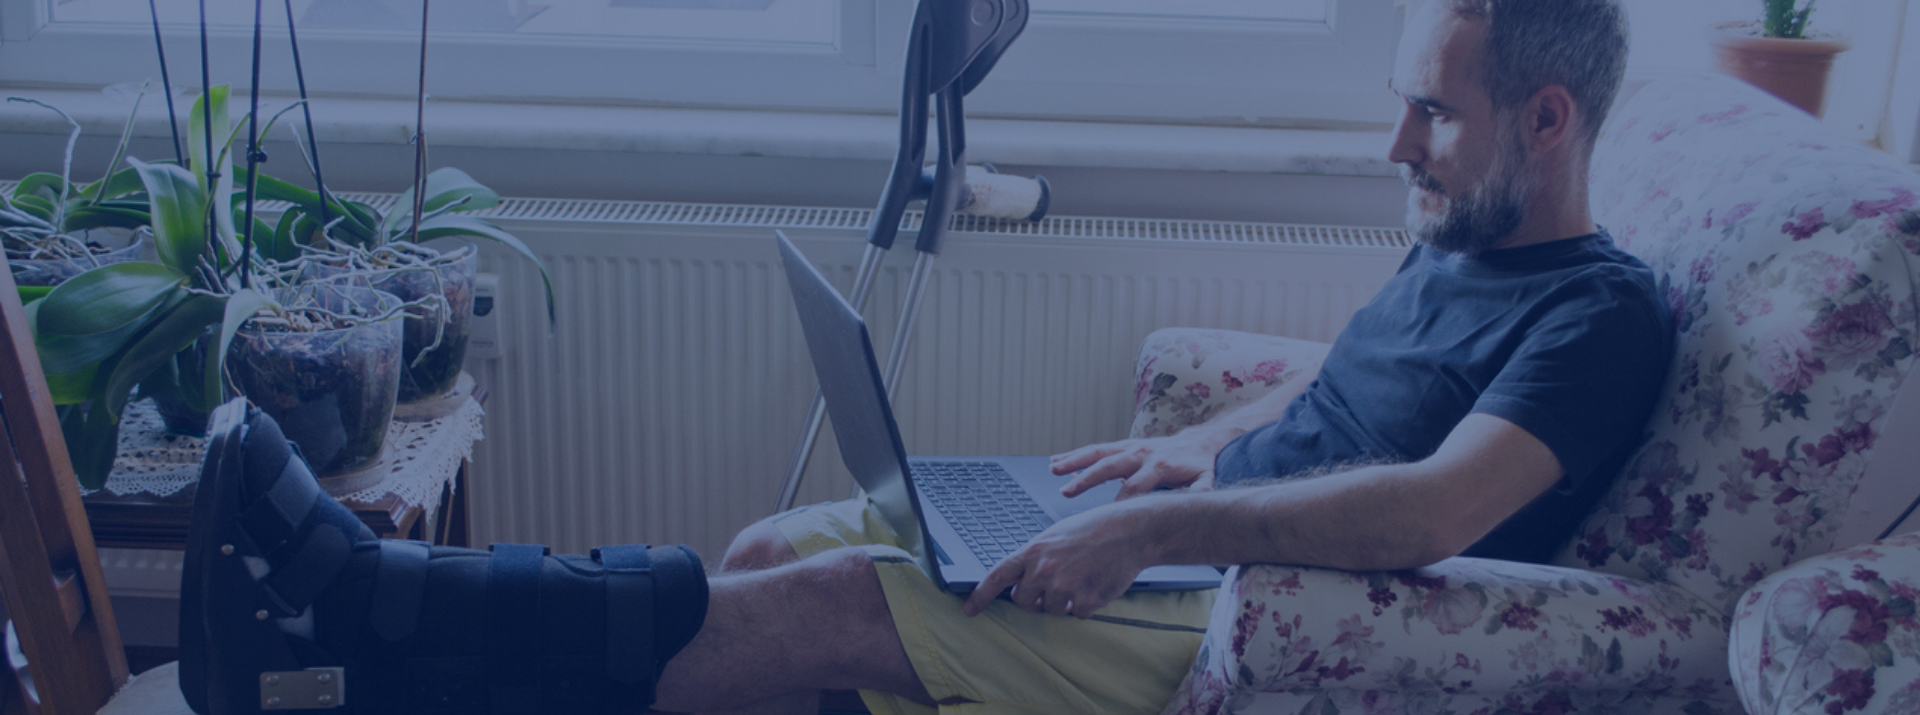 Online video consultations keep your rehabilitation on track.